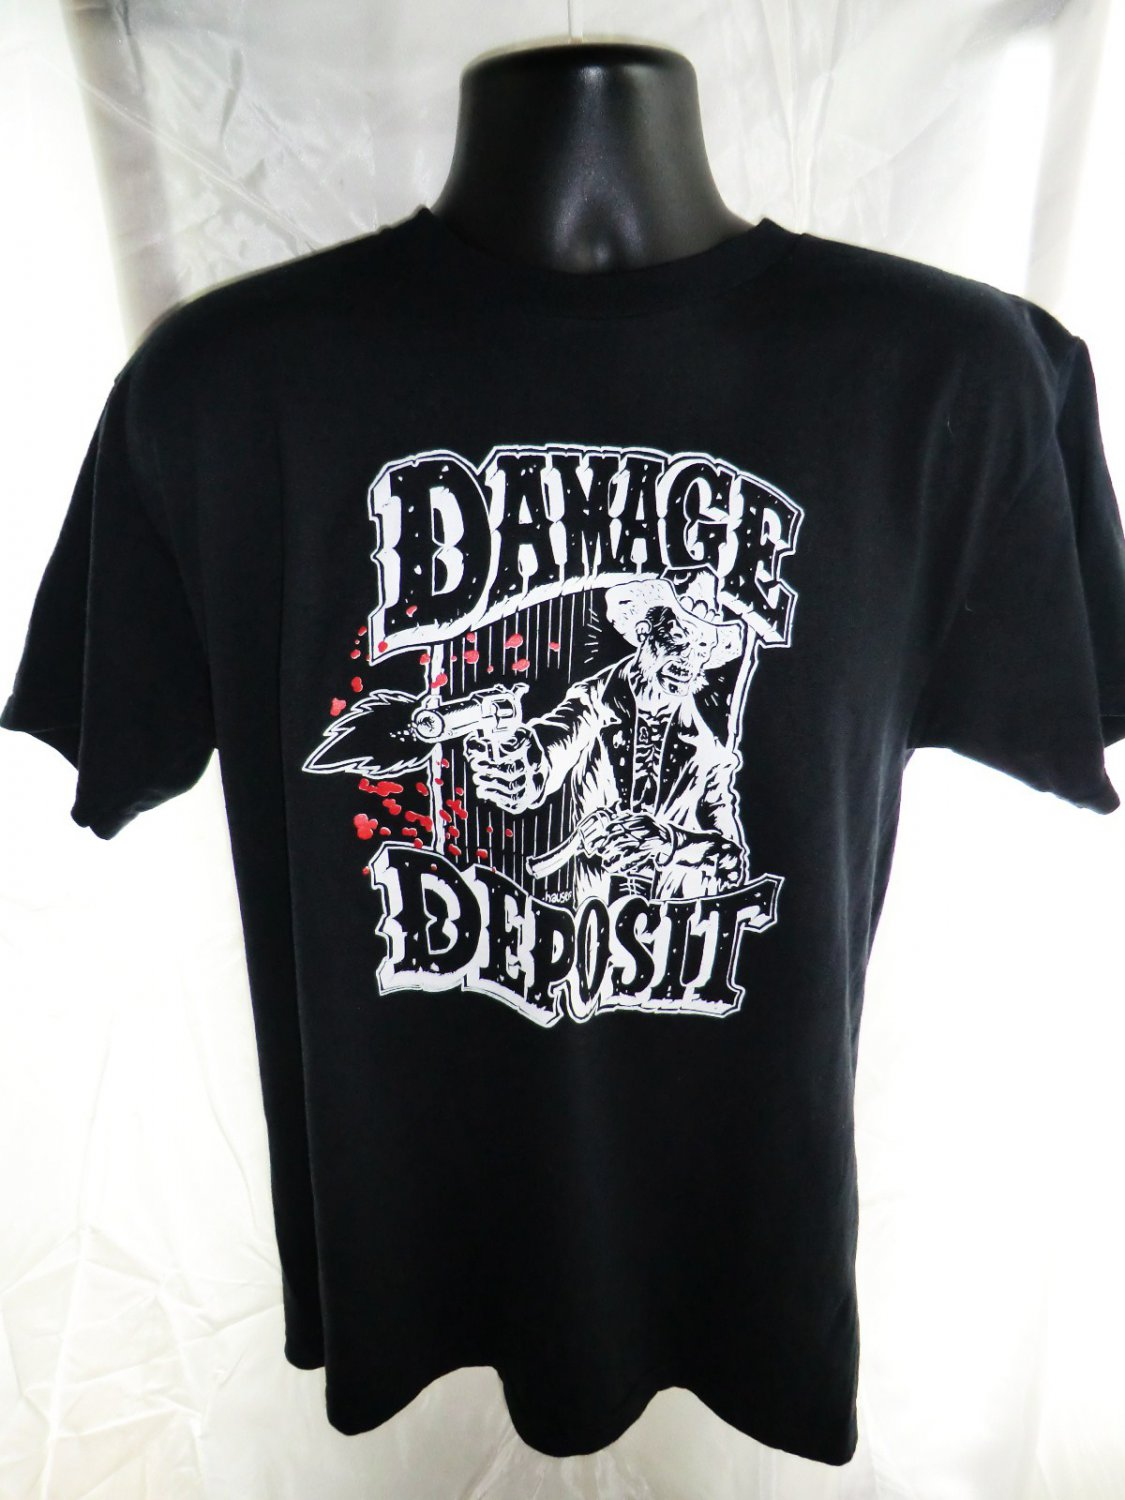 Damage Deposit Summer Tour 2004 Size Large T-Shirt